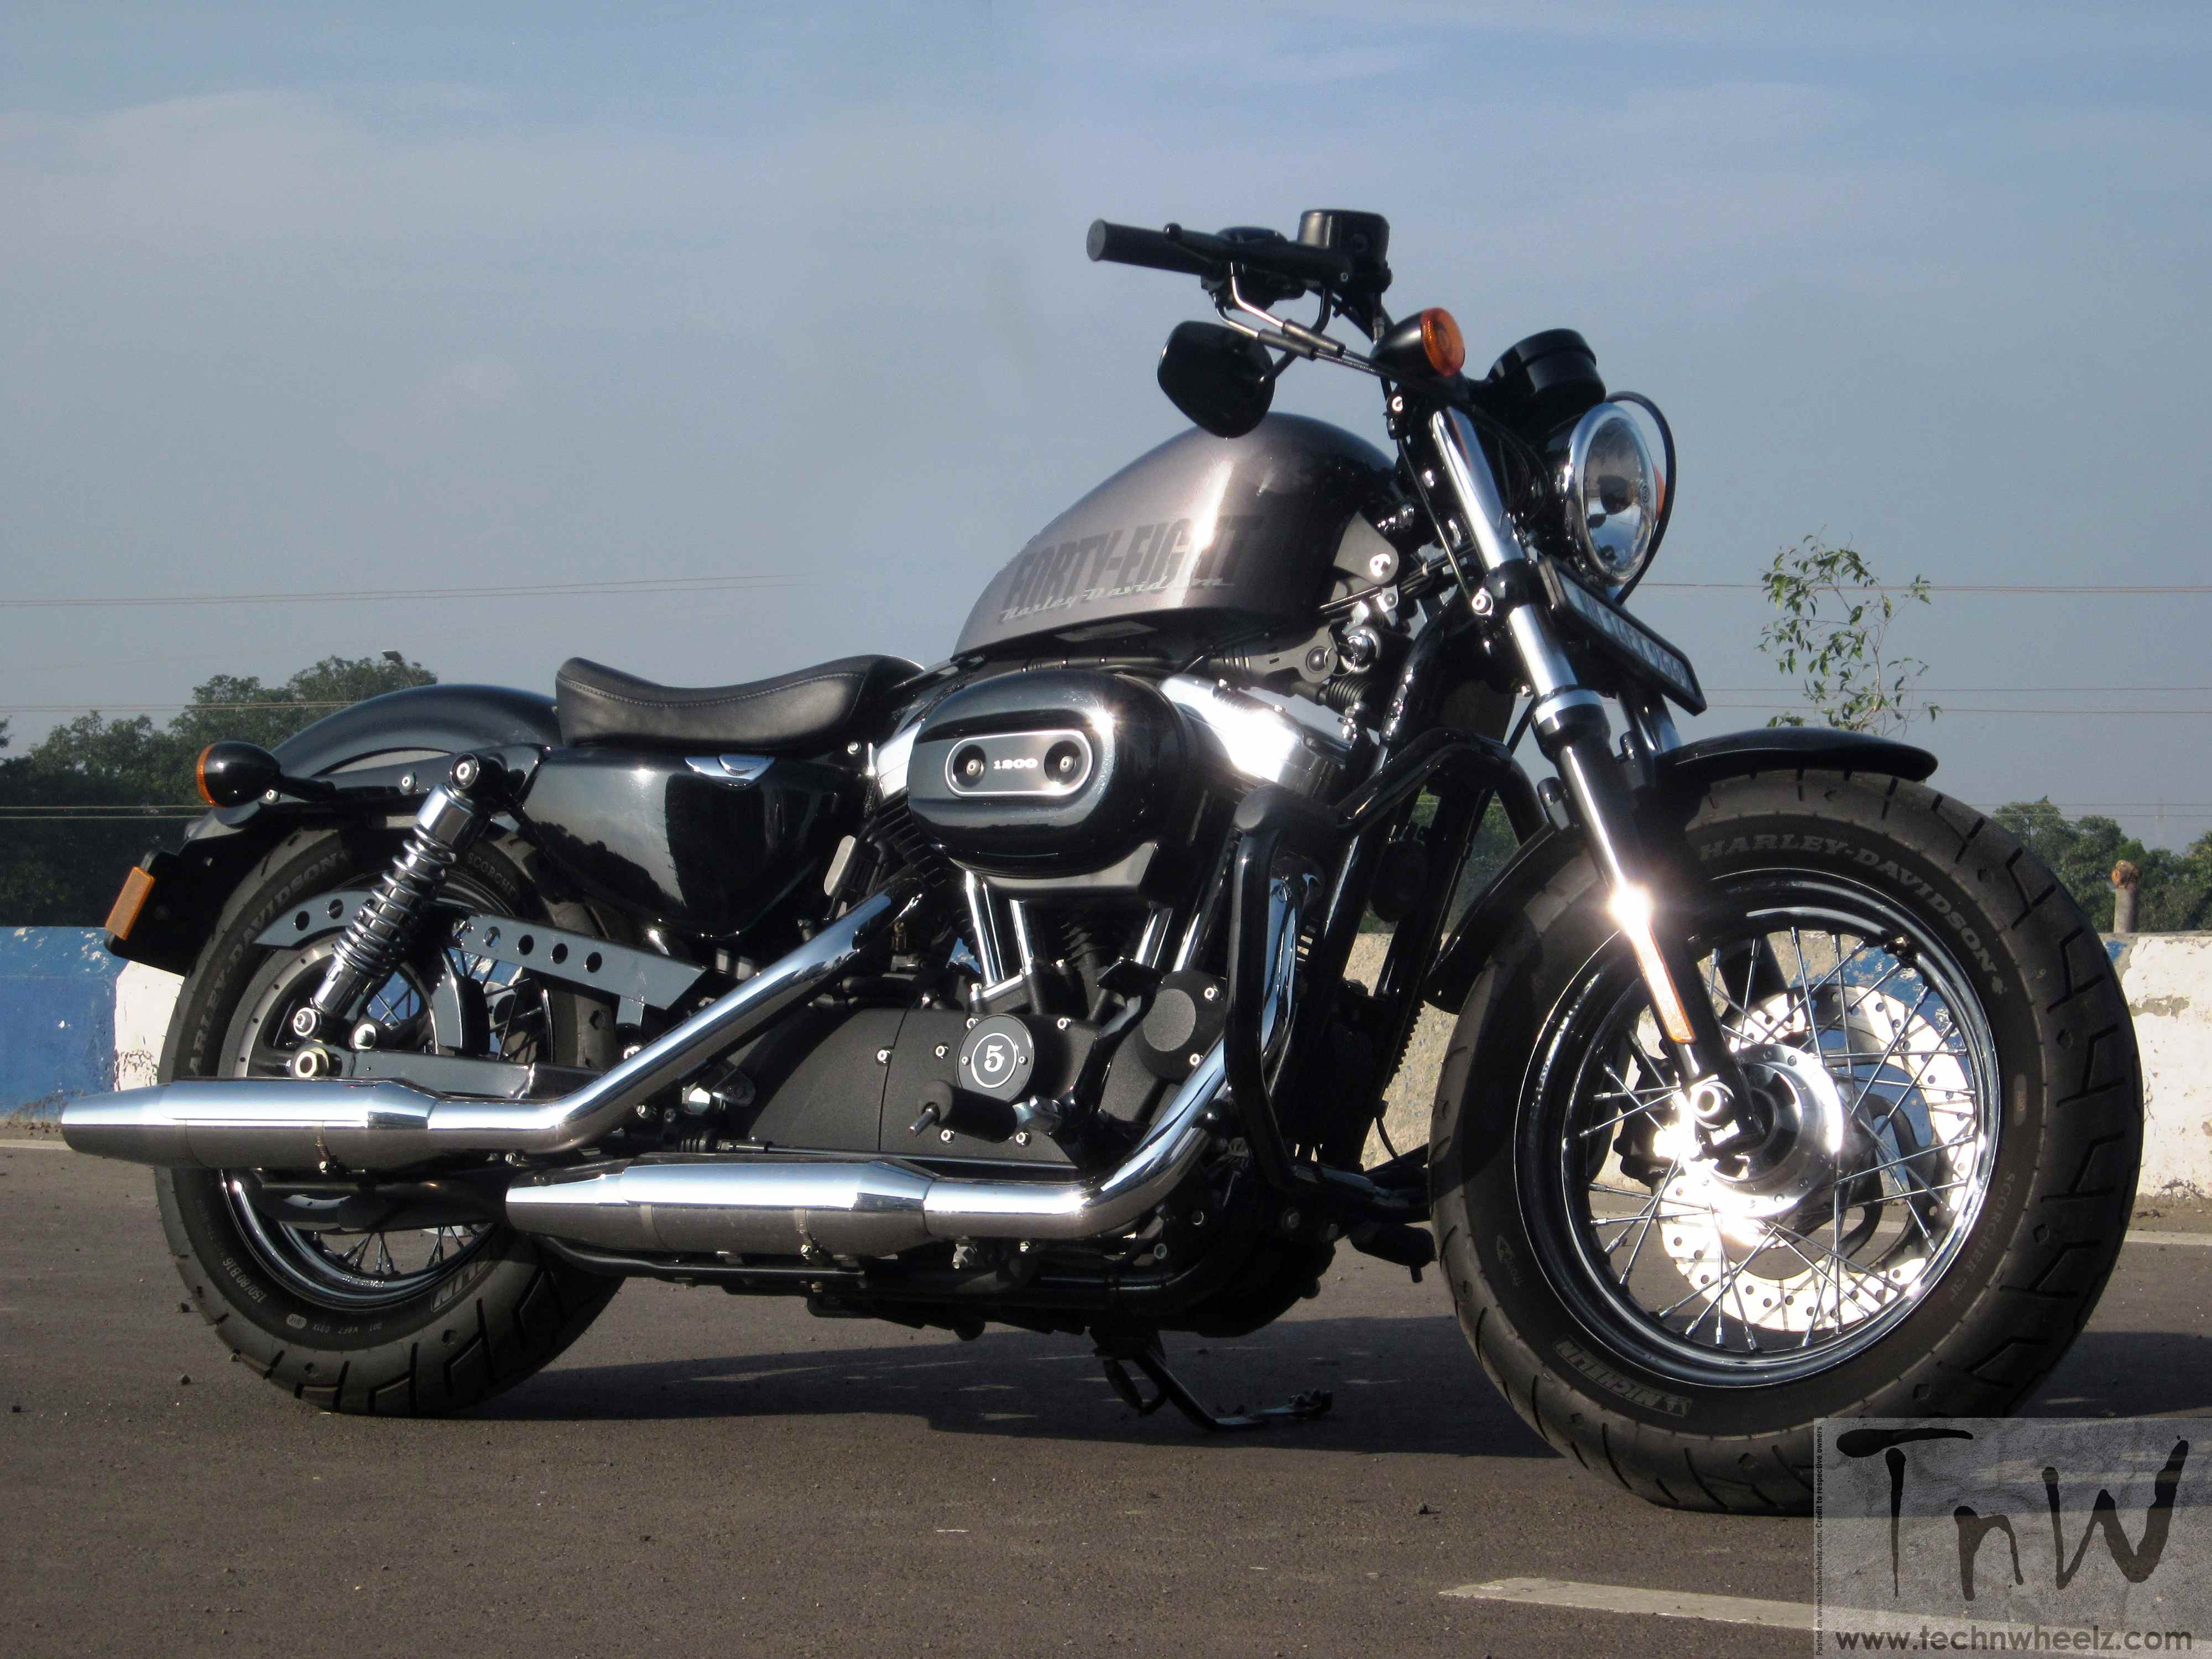 harley davidson forty eight the raw ride technwheelz. Black Bedroom Furniture Sets. Home Design Ideas